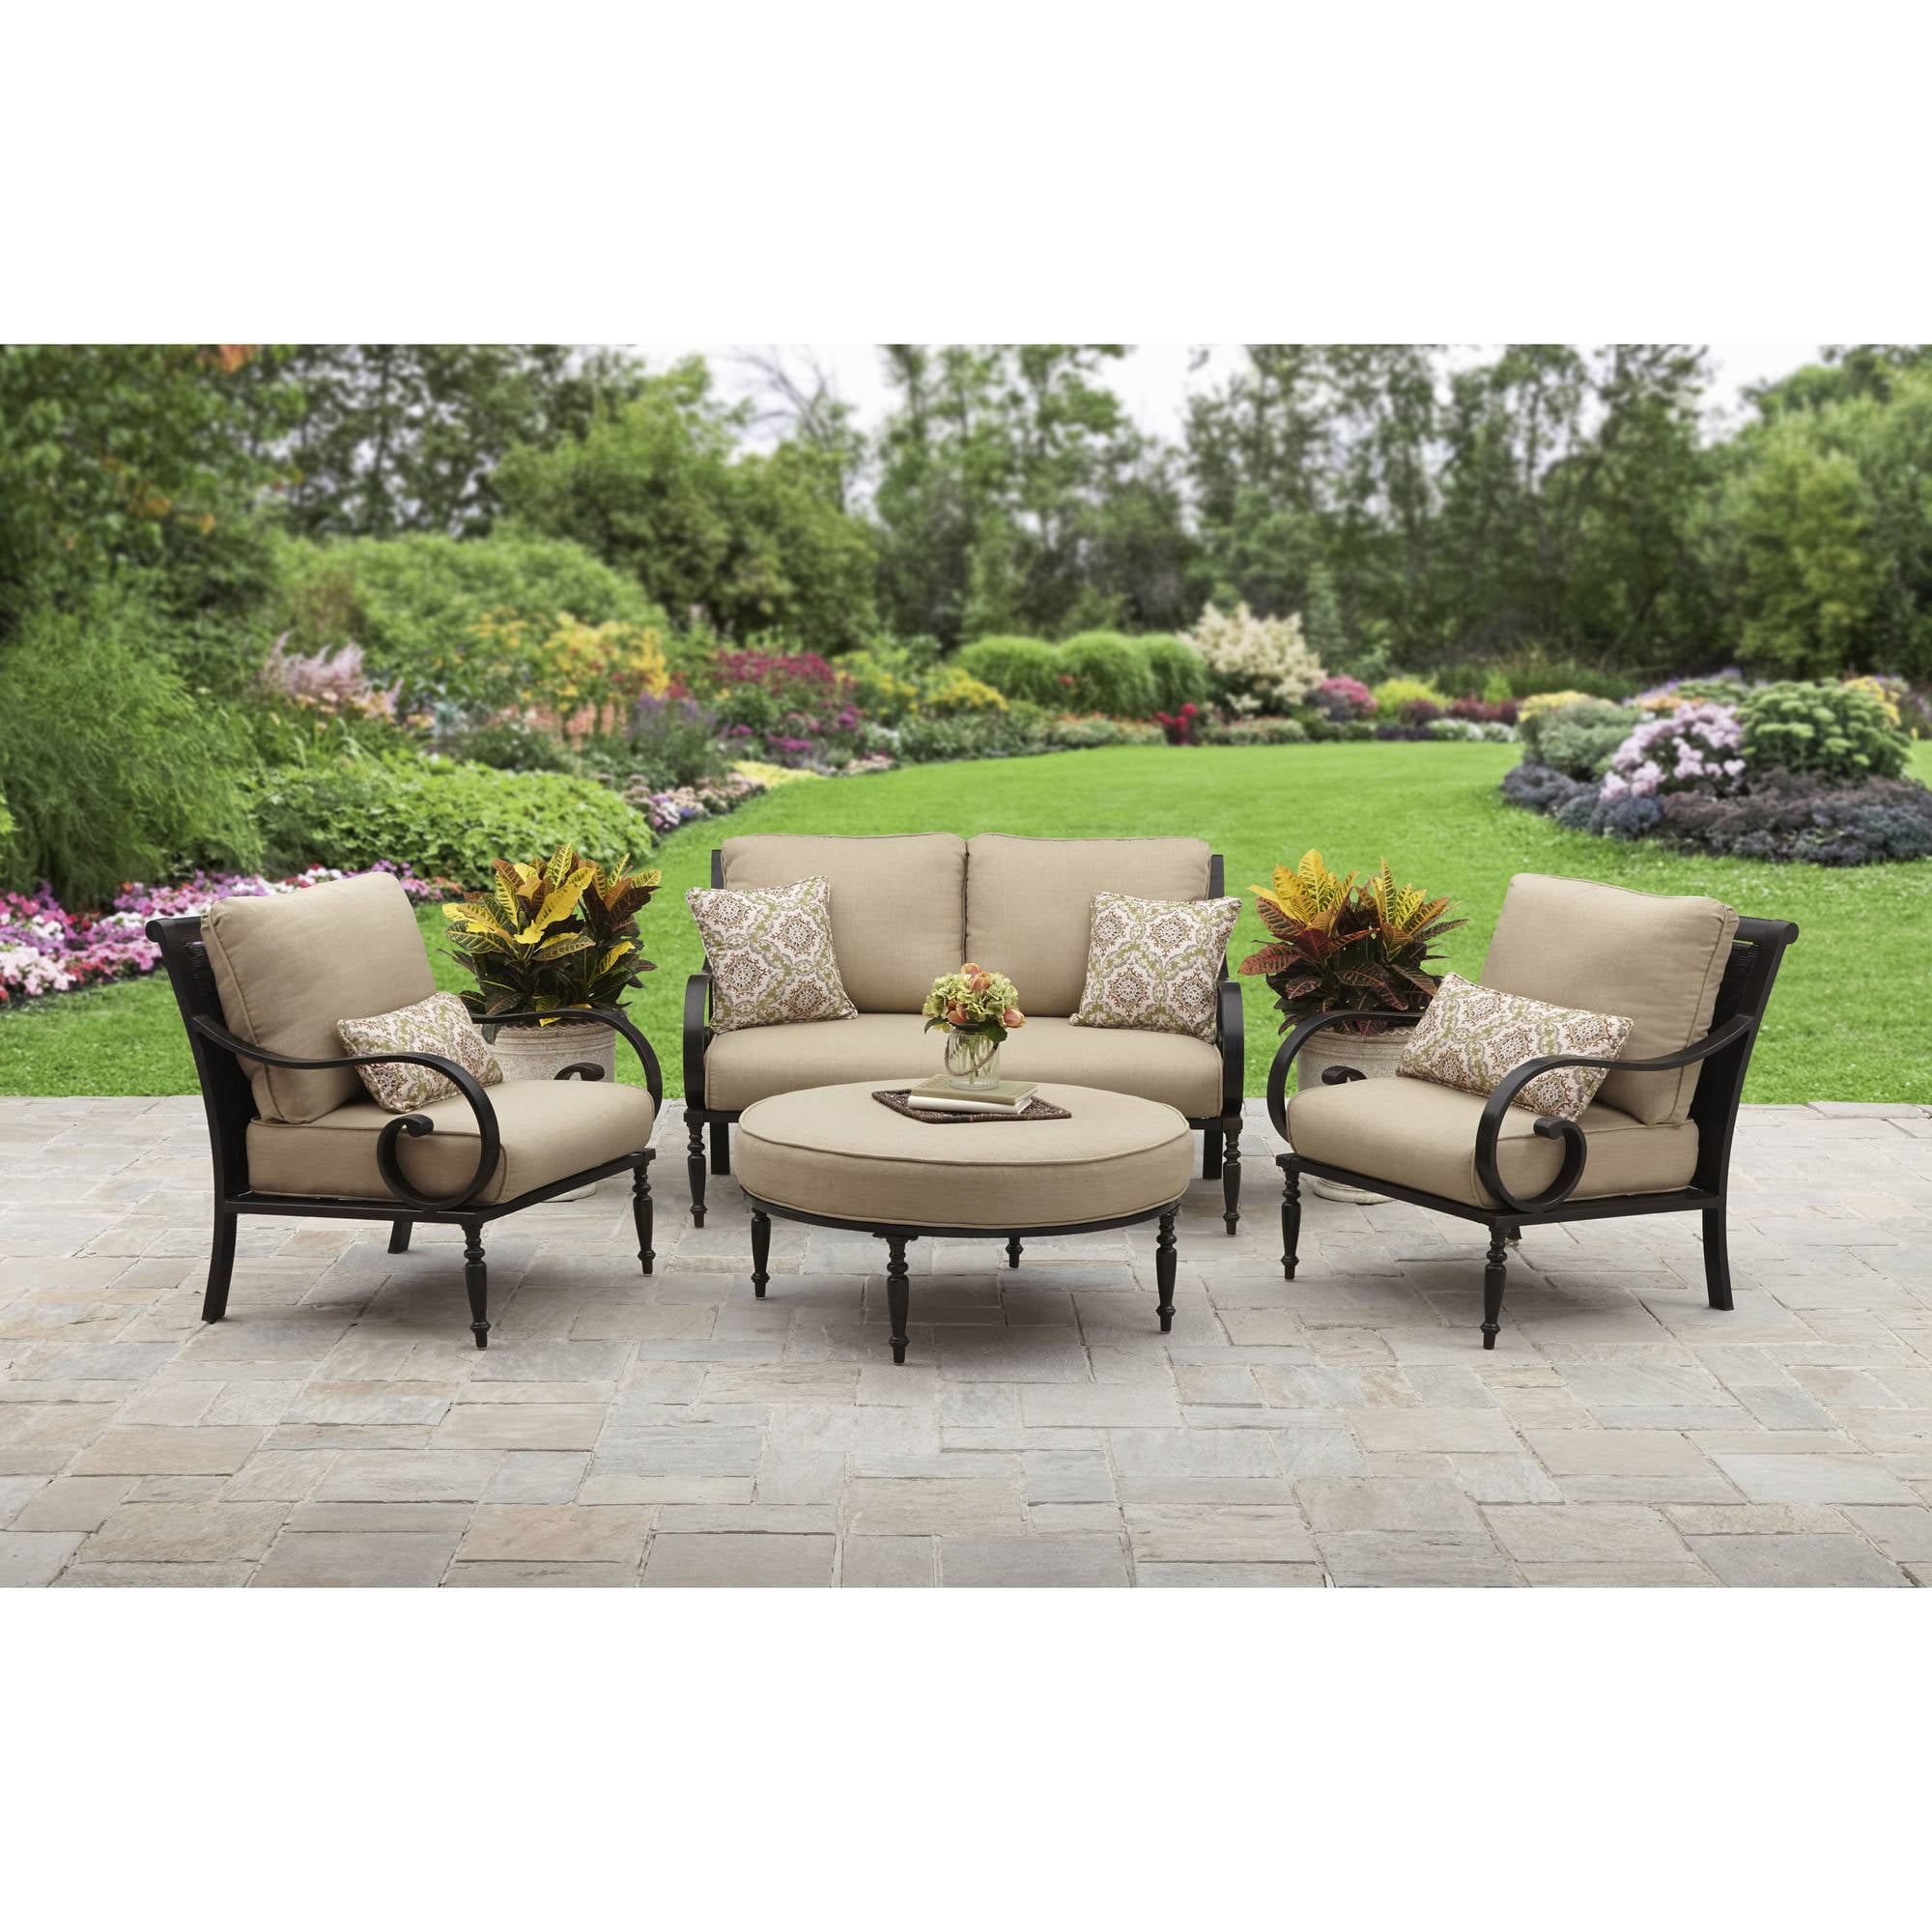 Exceptionnel Better Homes And Gardens Azalea Ridge Outdoor Conversation Set   Walmart.com